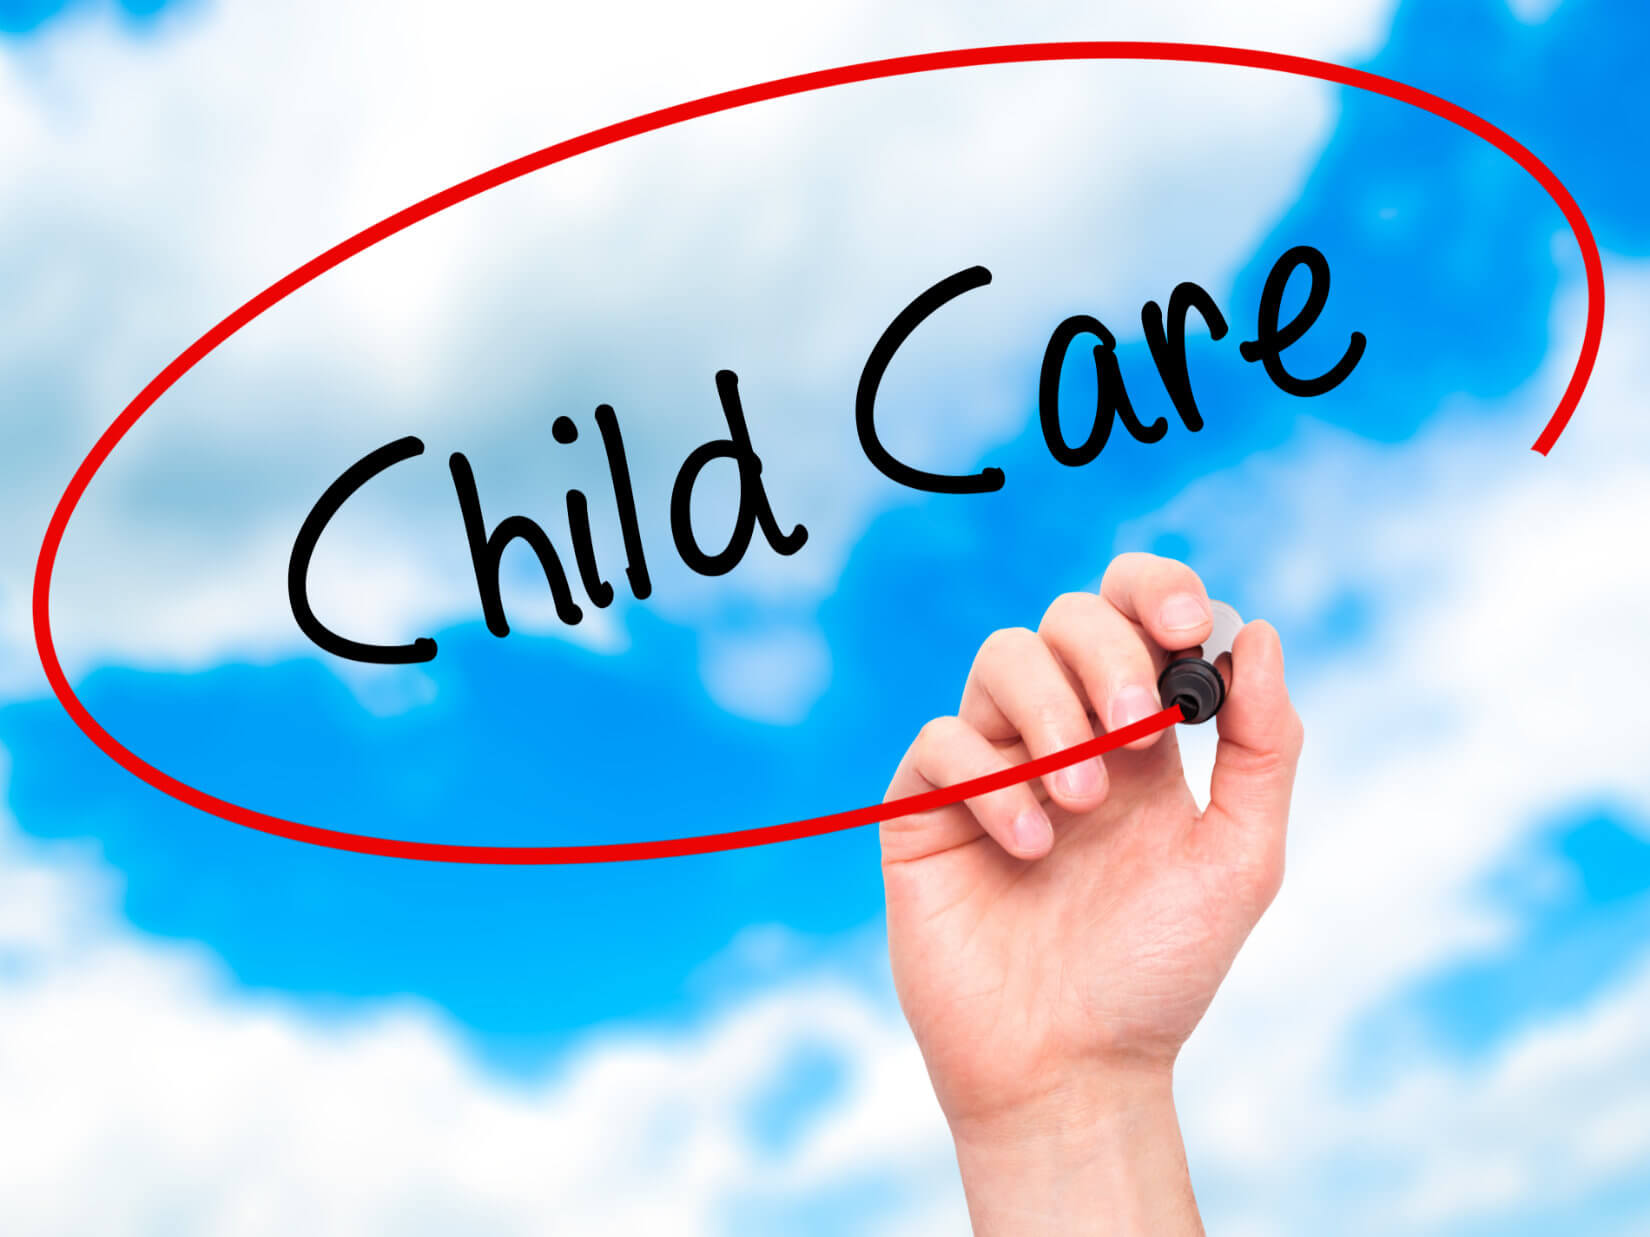 Paediatric first aid training online, cpd certified course